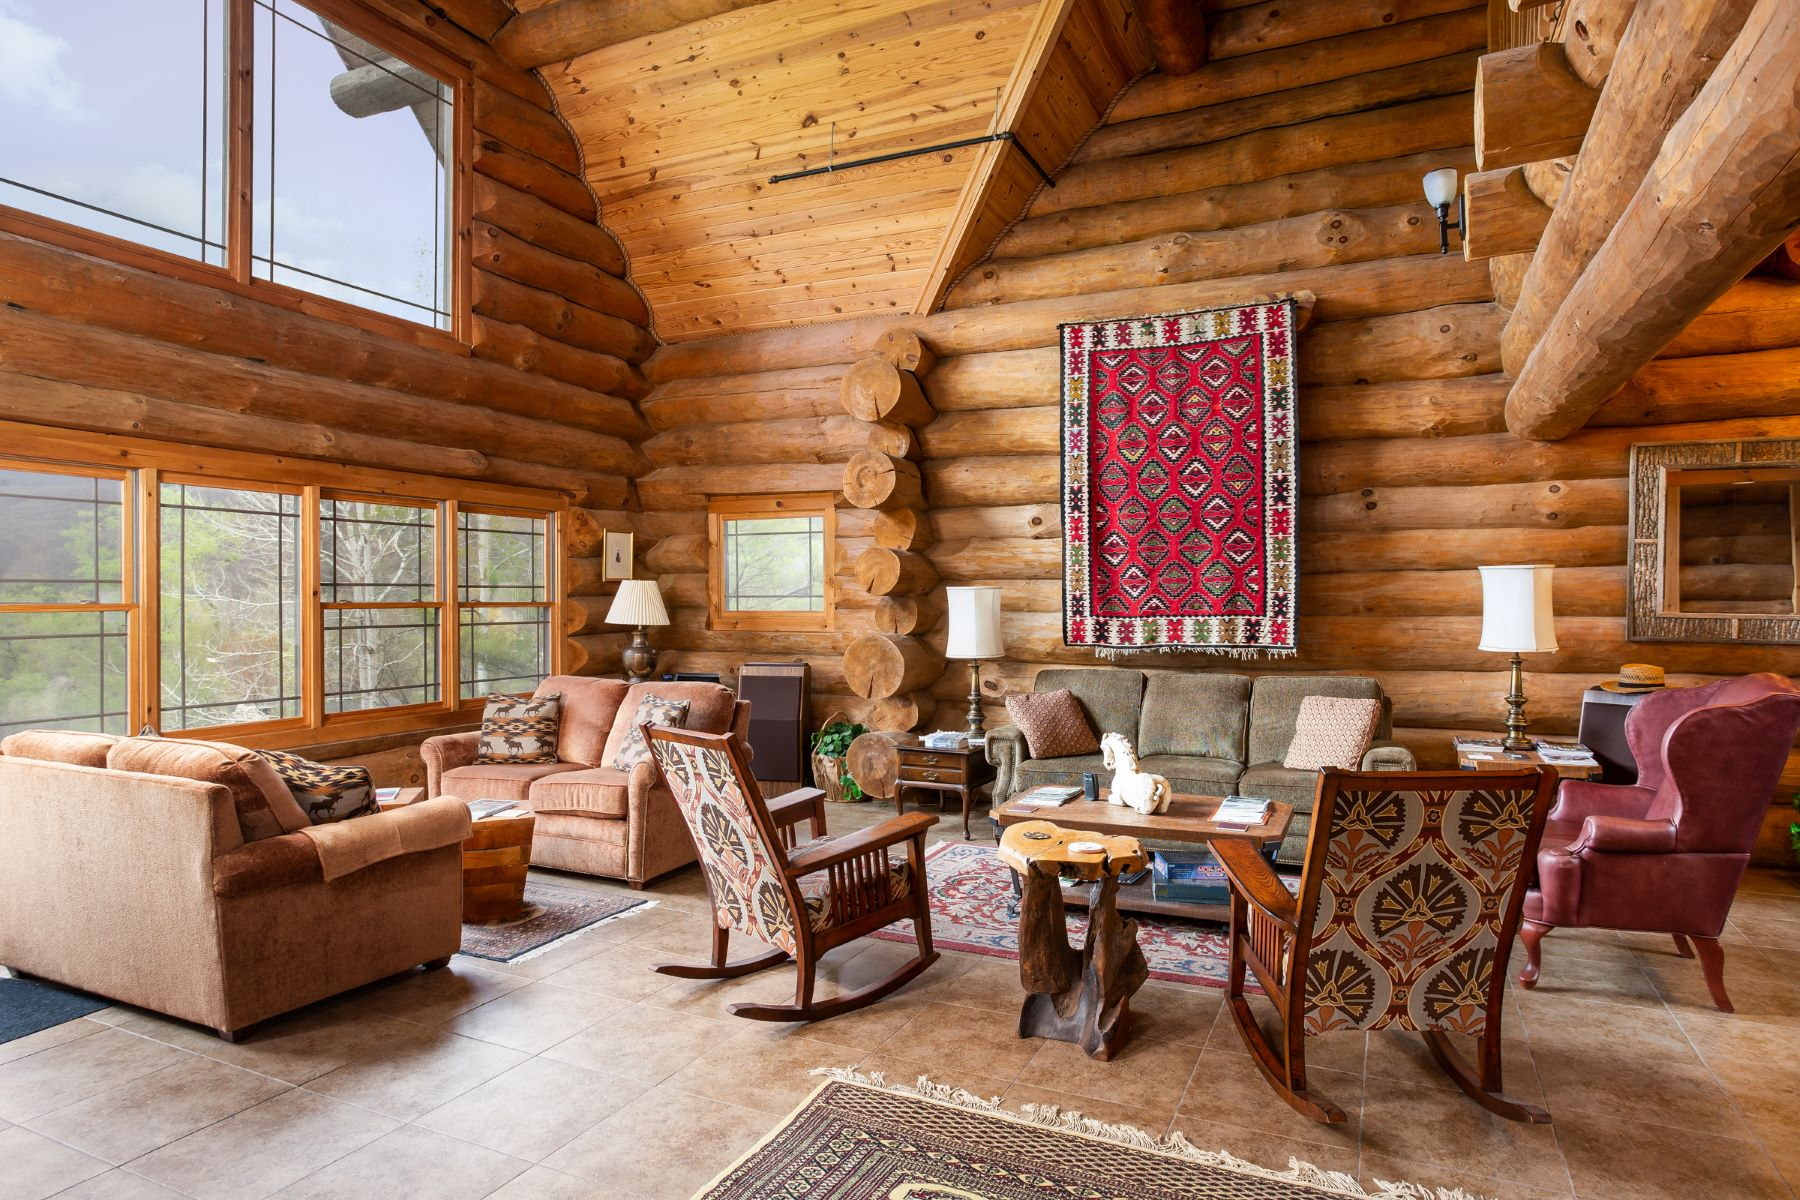 Single Family Home for Active at Stunning Log Home with Mountain Views in Wonderful Williamstown 61 Cobble View Rd Williamstown, Massachusetts 01267 United States